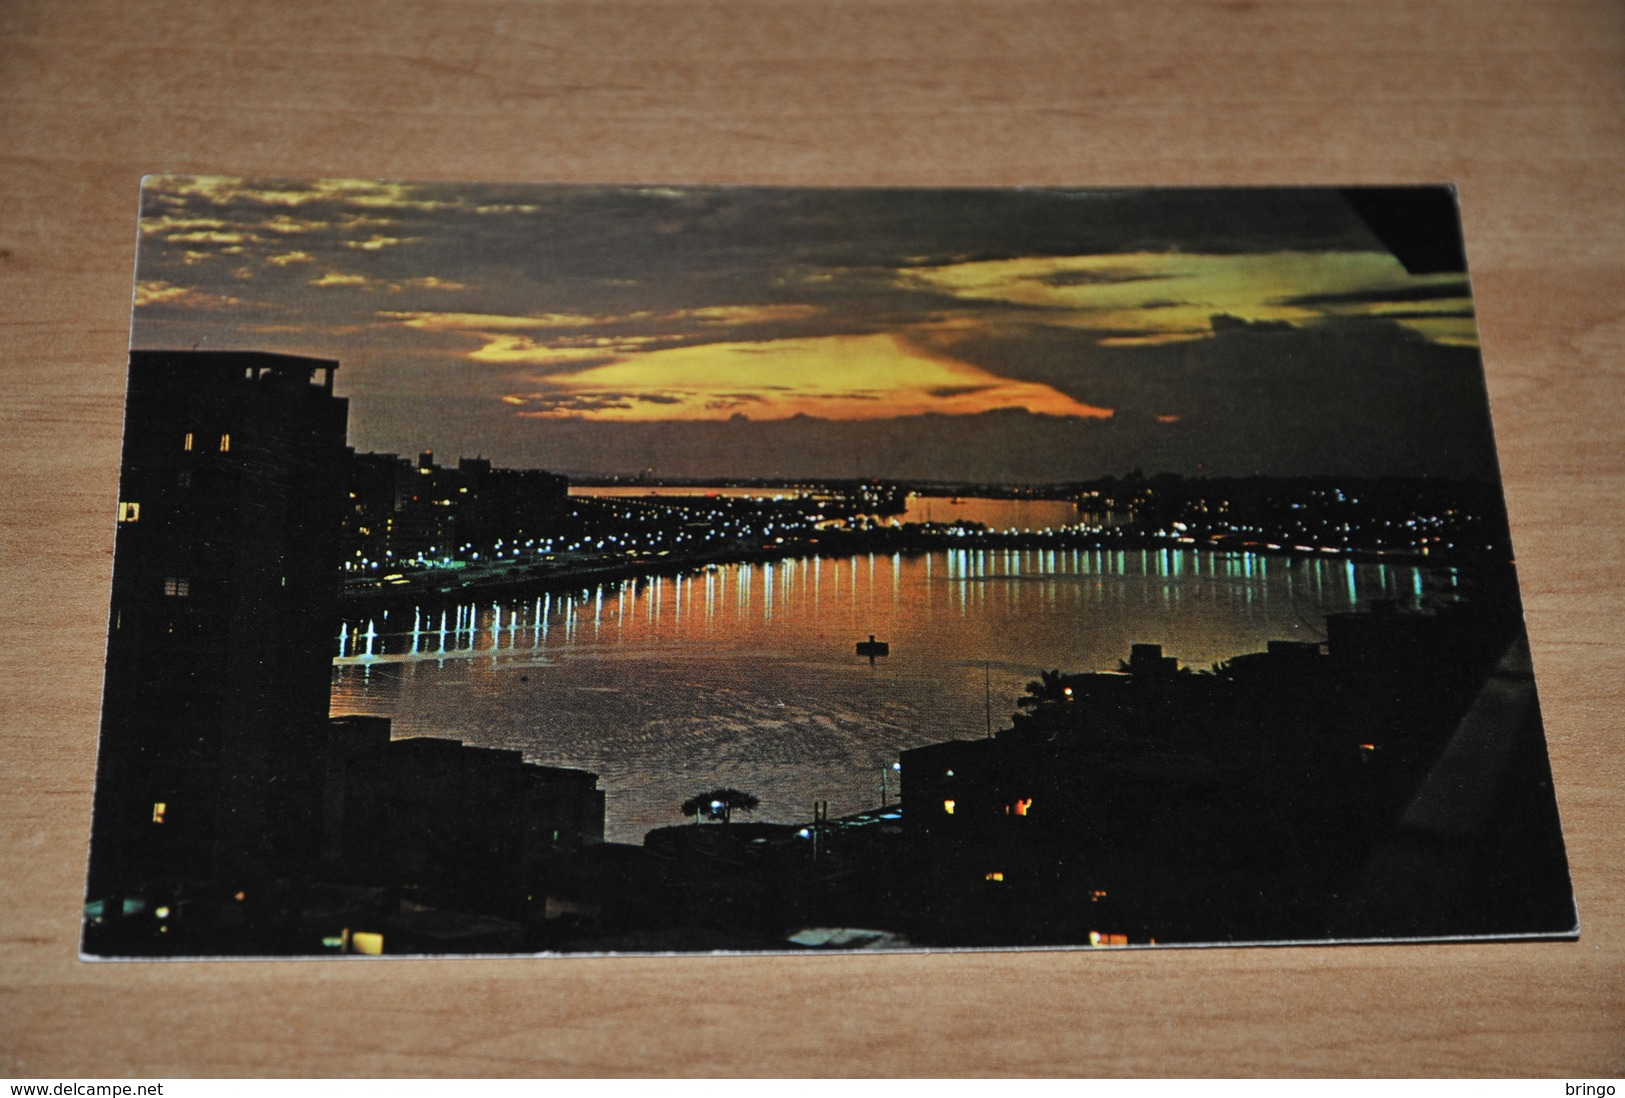 9220-   TYPICAL SUNSET VIEW OF THE CONDADO LAGOON, PUERTO RICO - Costa Rica